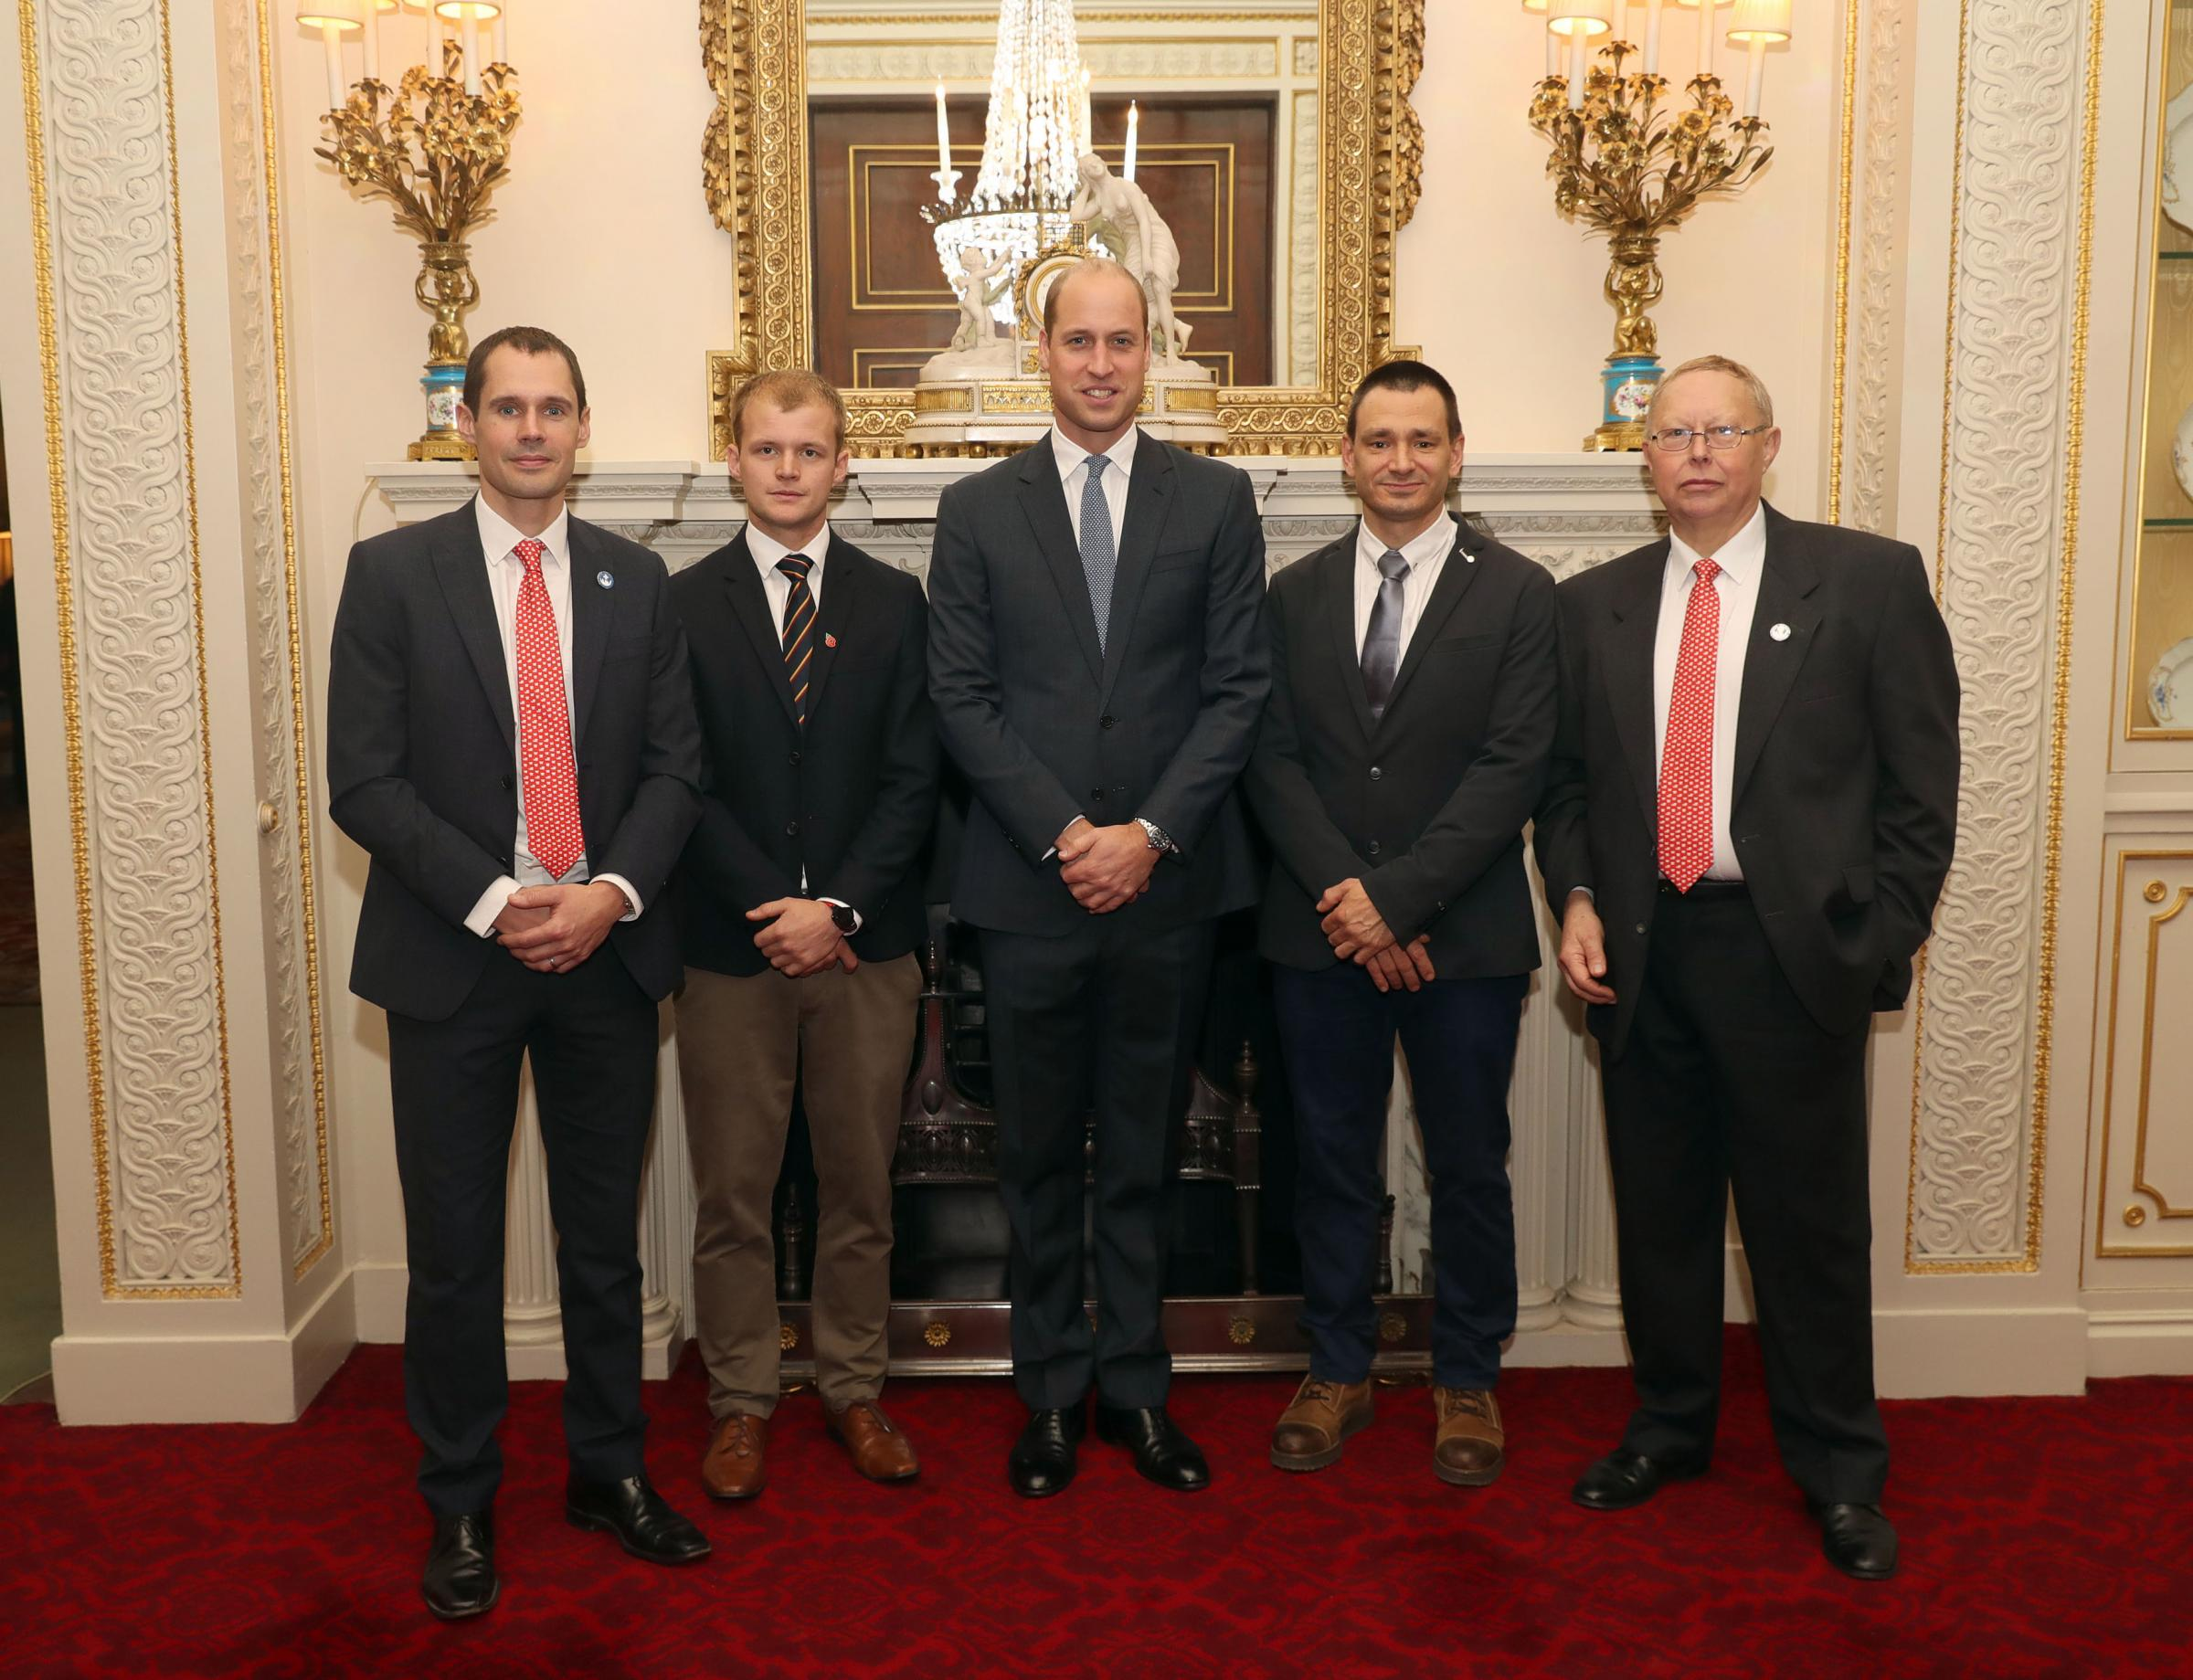 The Duke of Cambridge, with (left to right)  Chris Jewell, Connor Roe, Jim Warny and Rob Harper, as he hosts a reception at Buckingham Palace in London for the British divers who helped rescue 12 trapped boys from a cave in Thailand. PRESS ASSOCIATION Pho